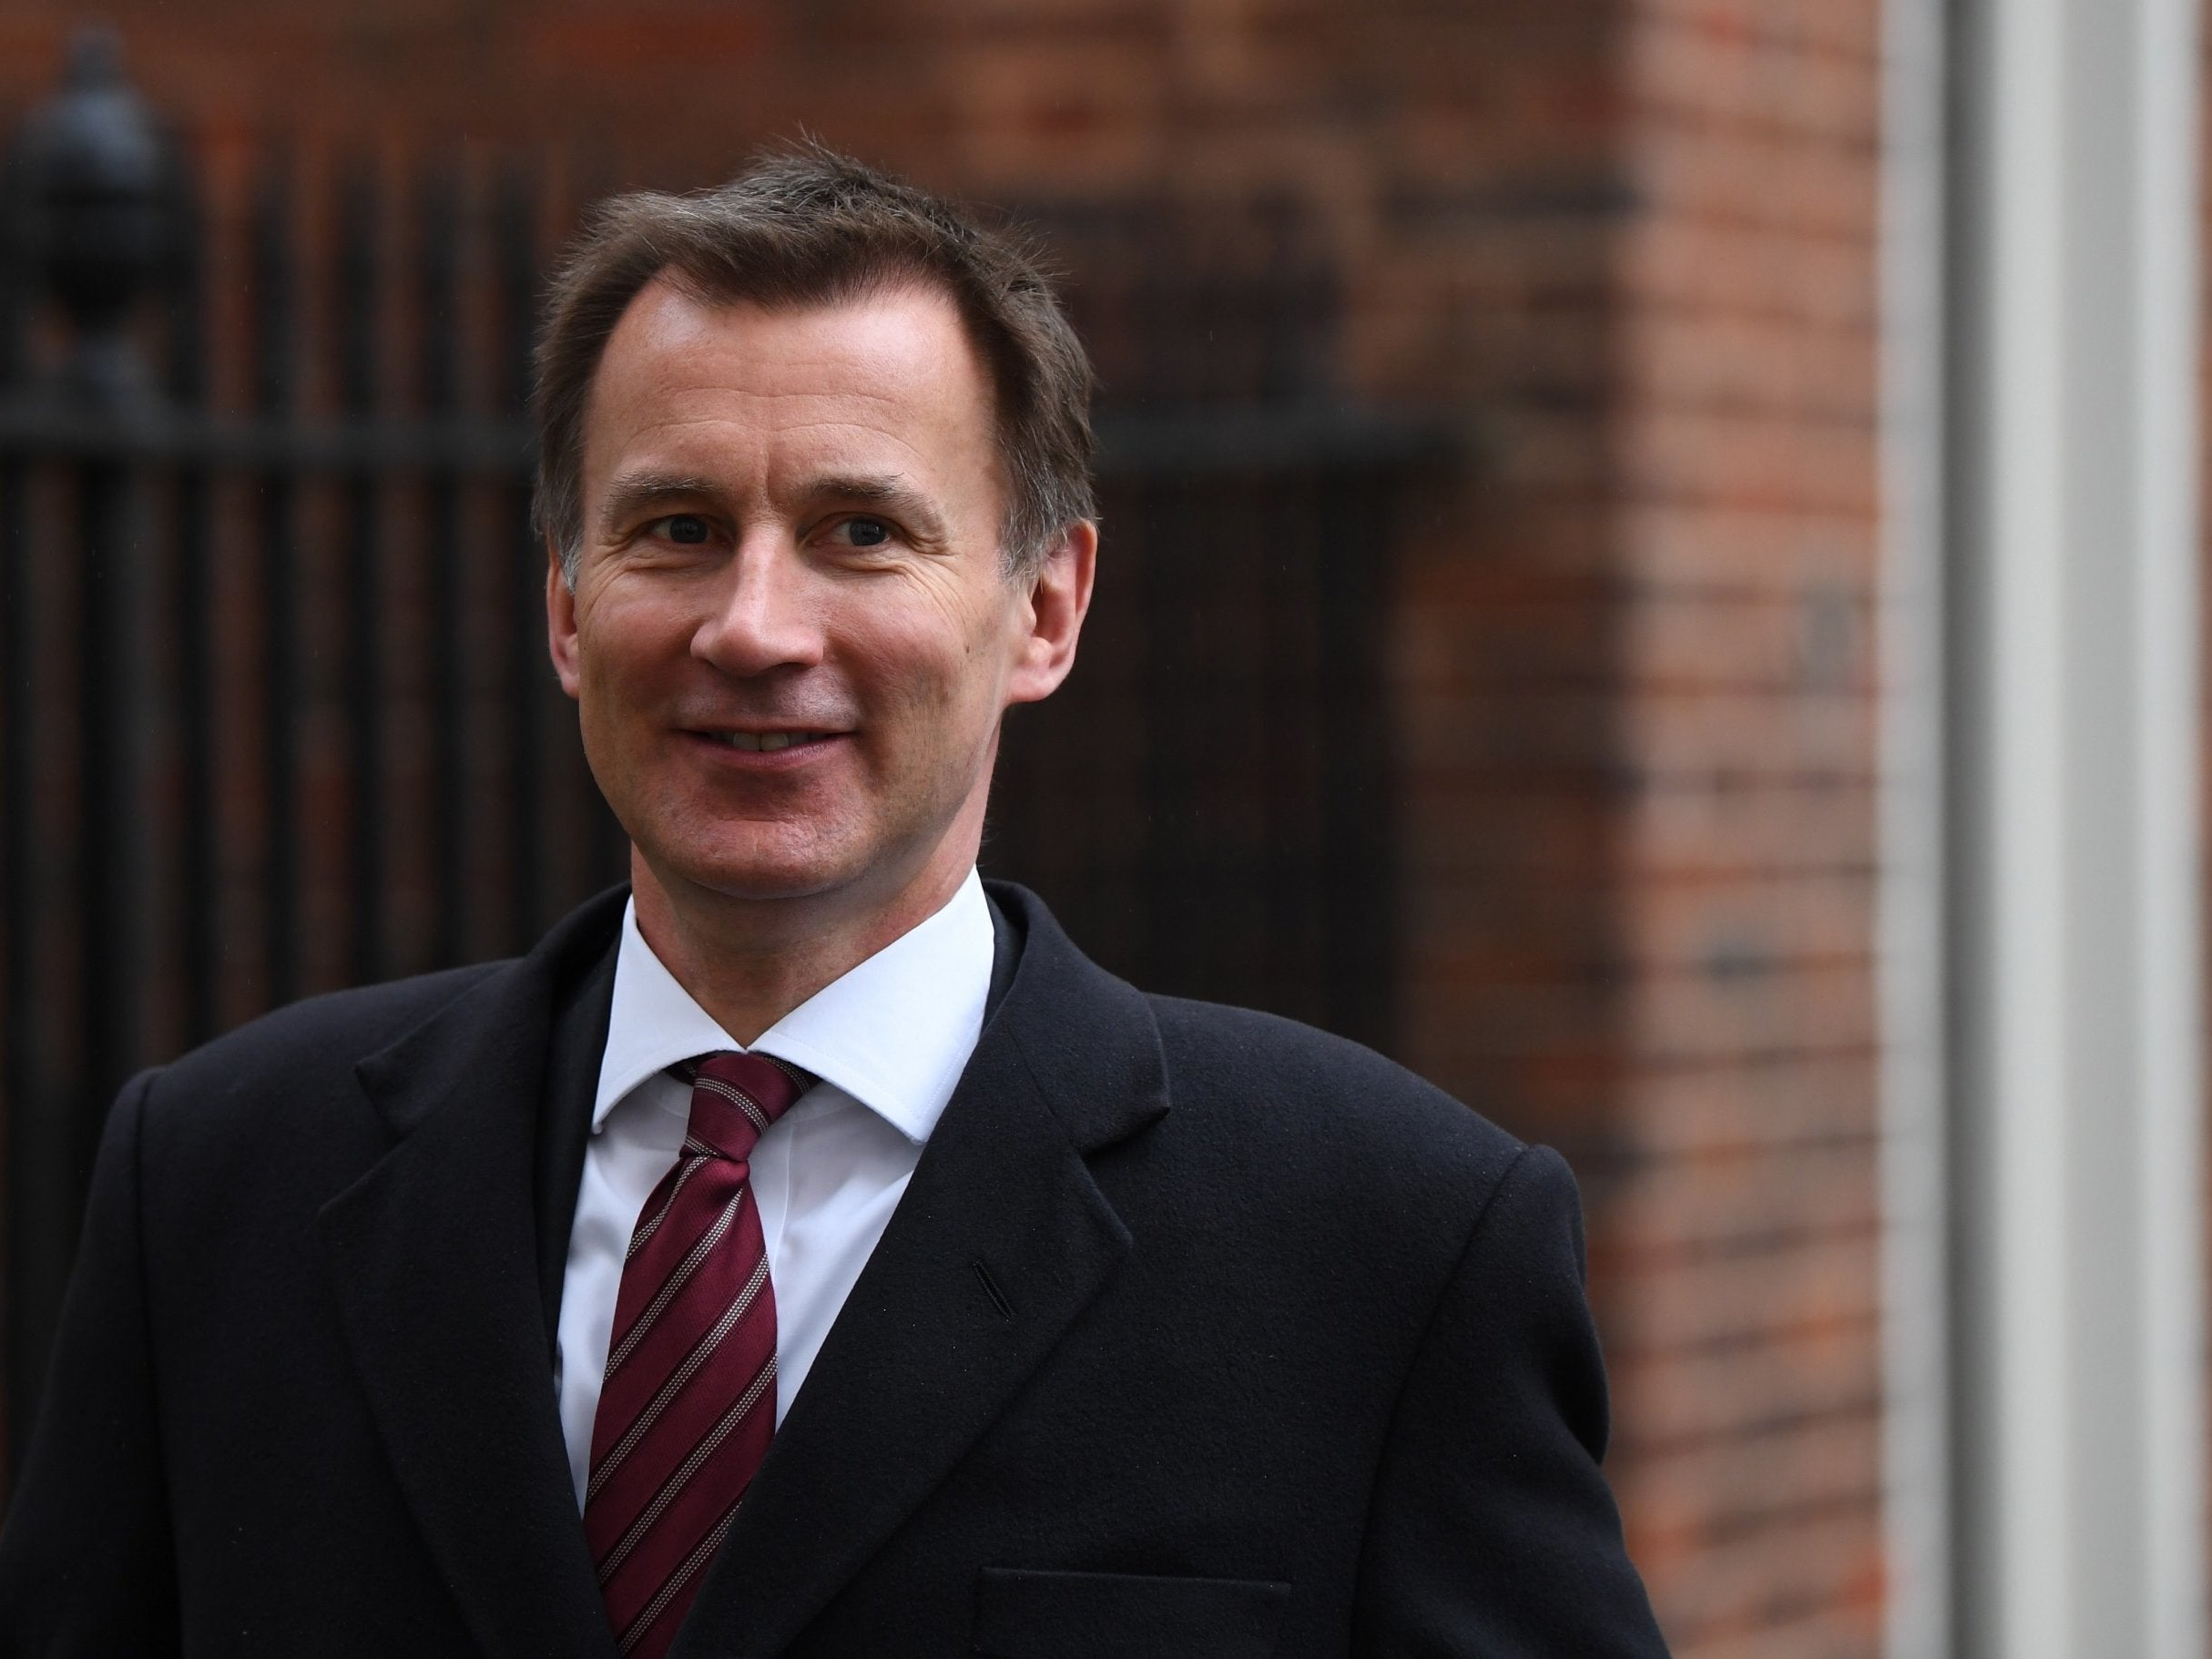 Brexit: Foreign Secretary hits back at French diplomat who said UK influence in Washington DC had 'vanished'